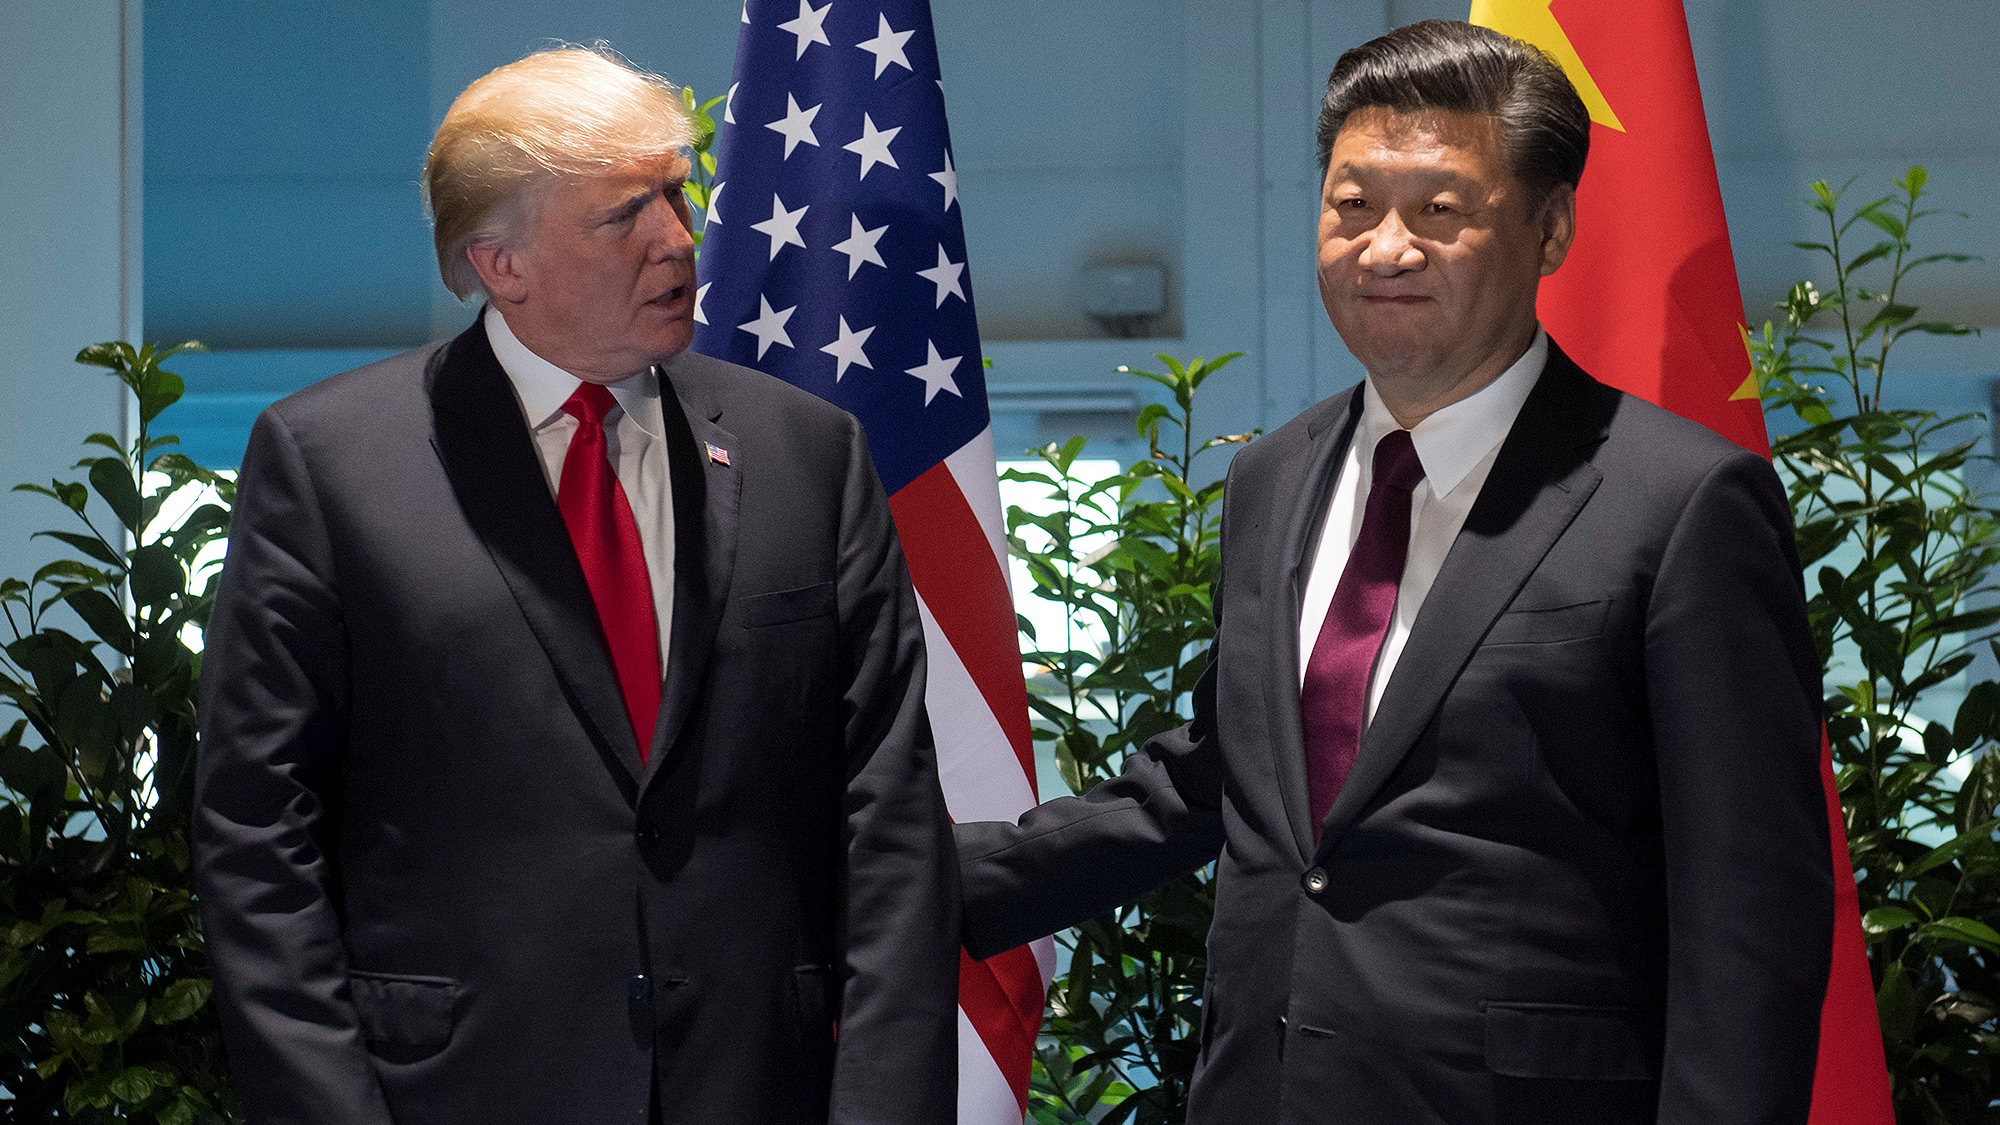 Donald Trump ve mayor optimismo tras tregua comercial con China